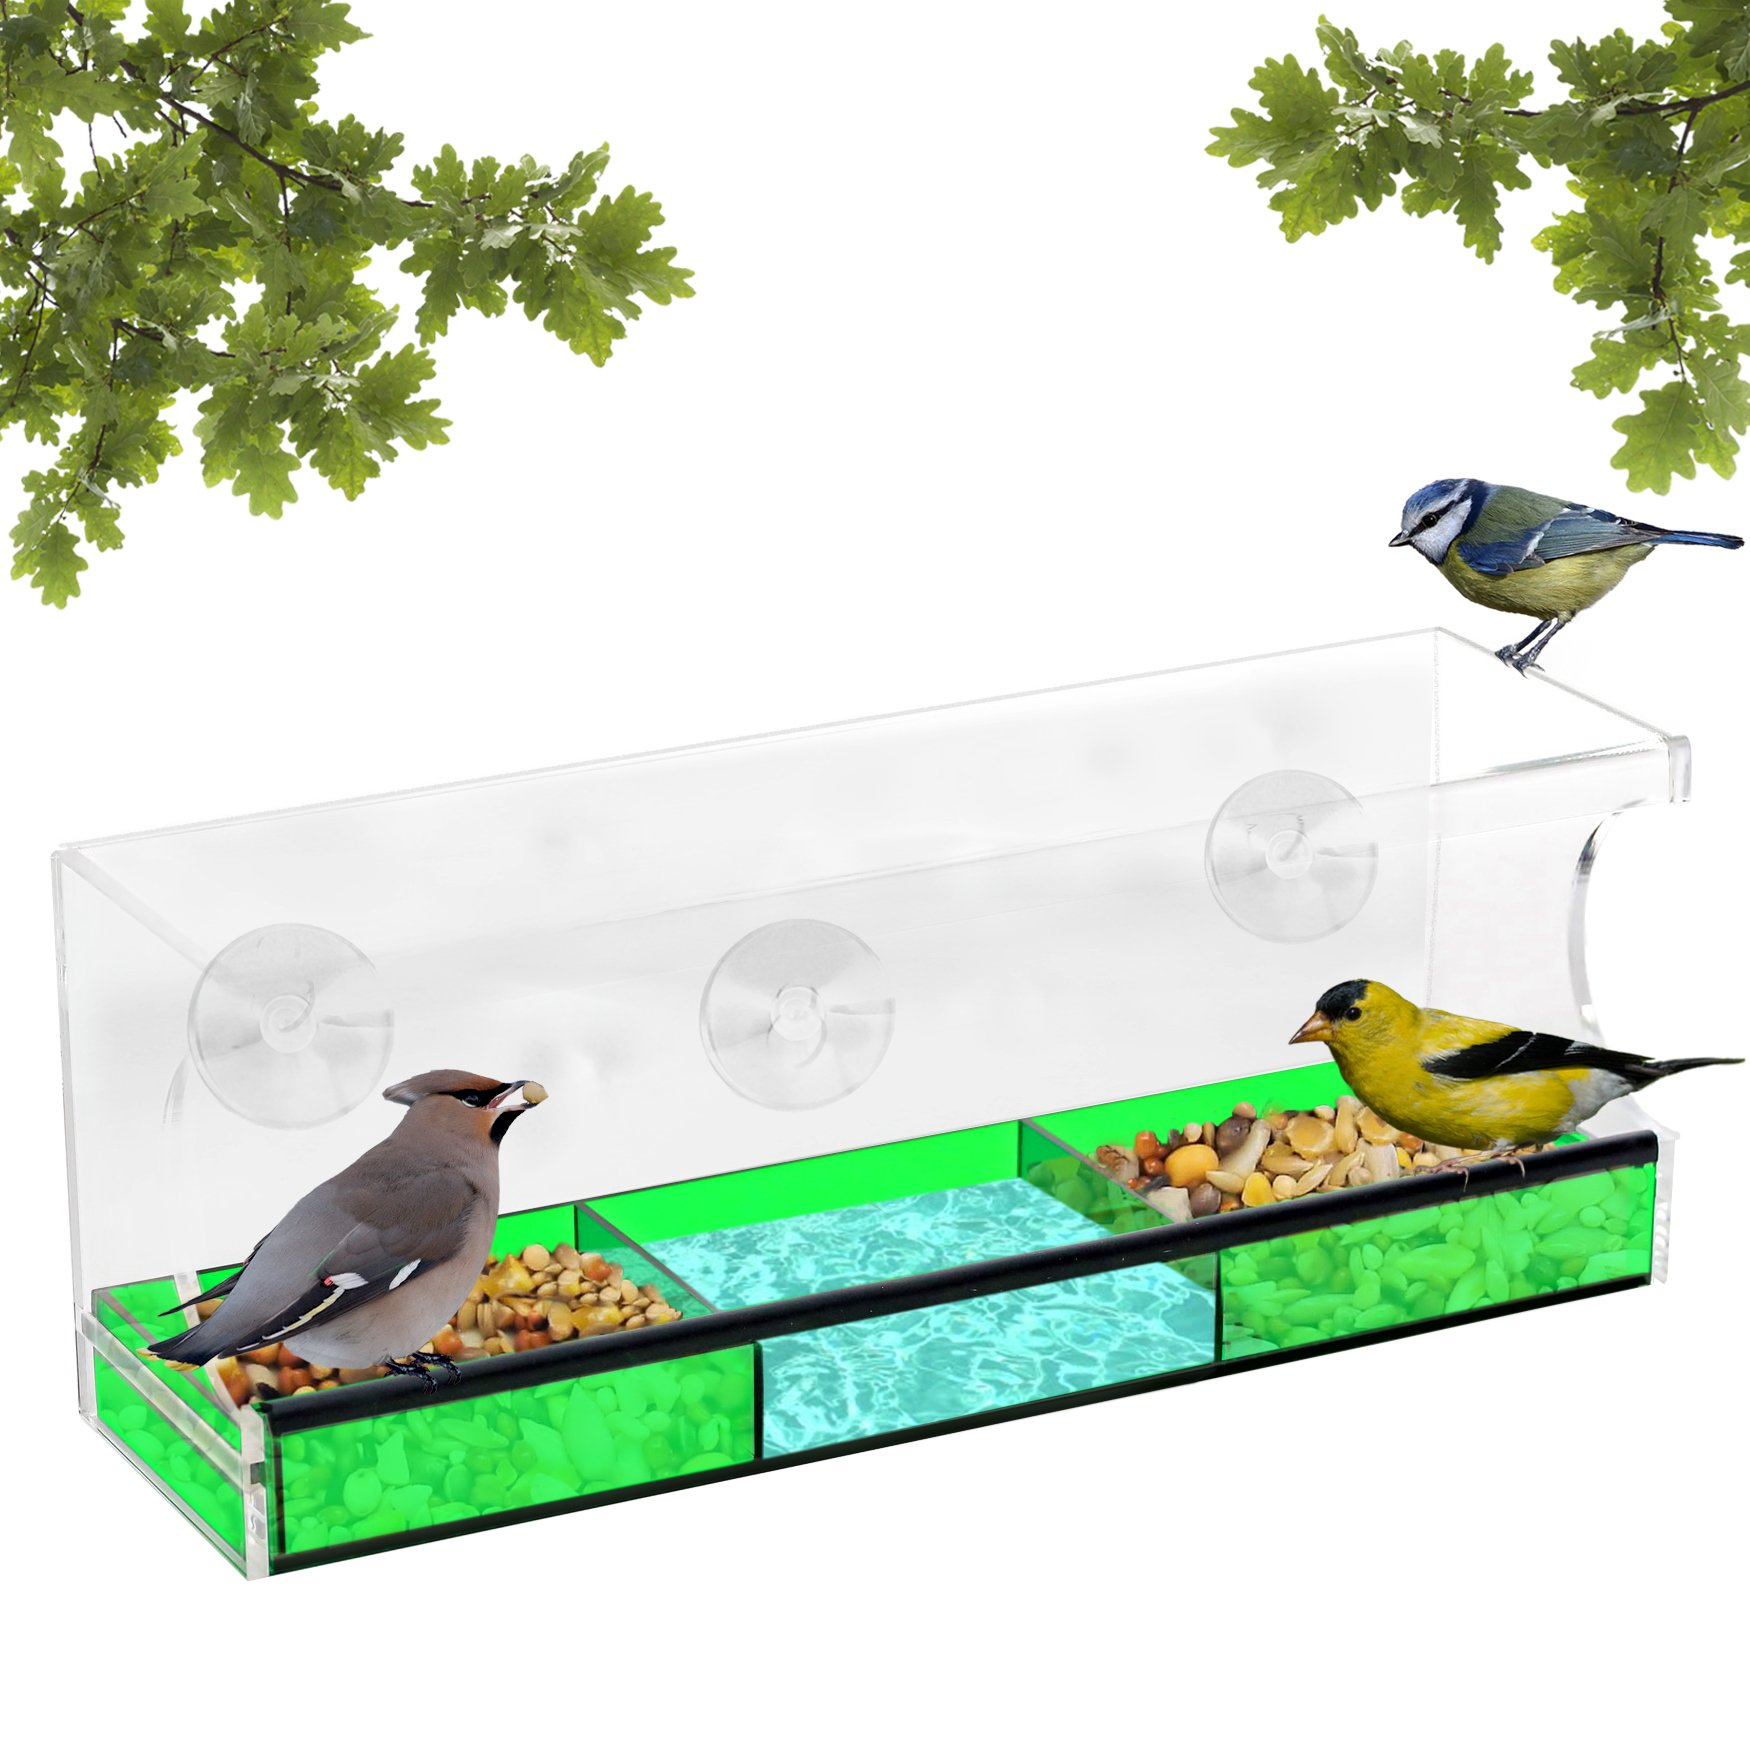 Outdoor Amor Window Bird Feeder With Suction Cups, XL Size U0026 Colored Tray  Attracts Wild